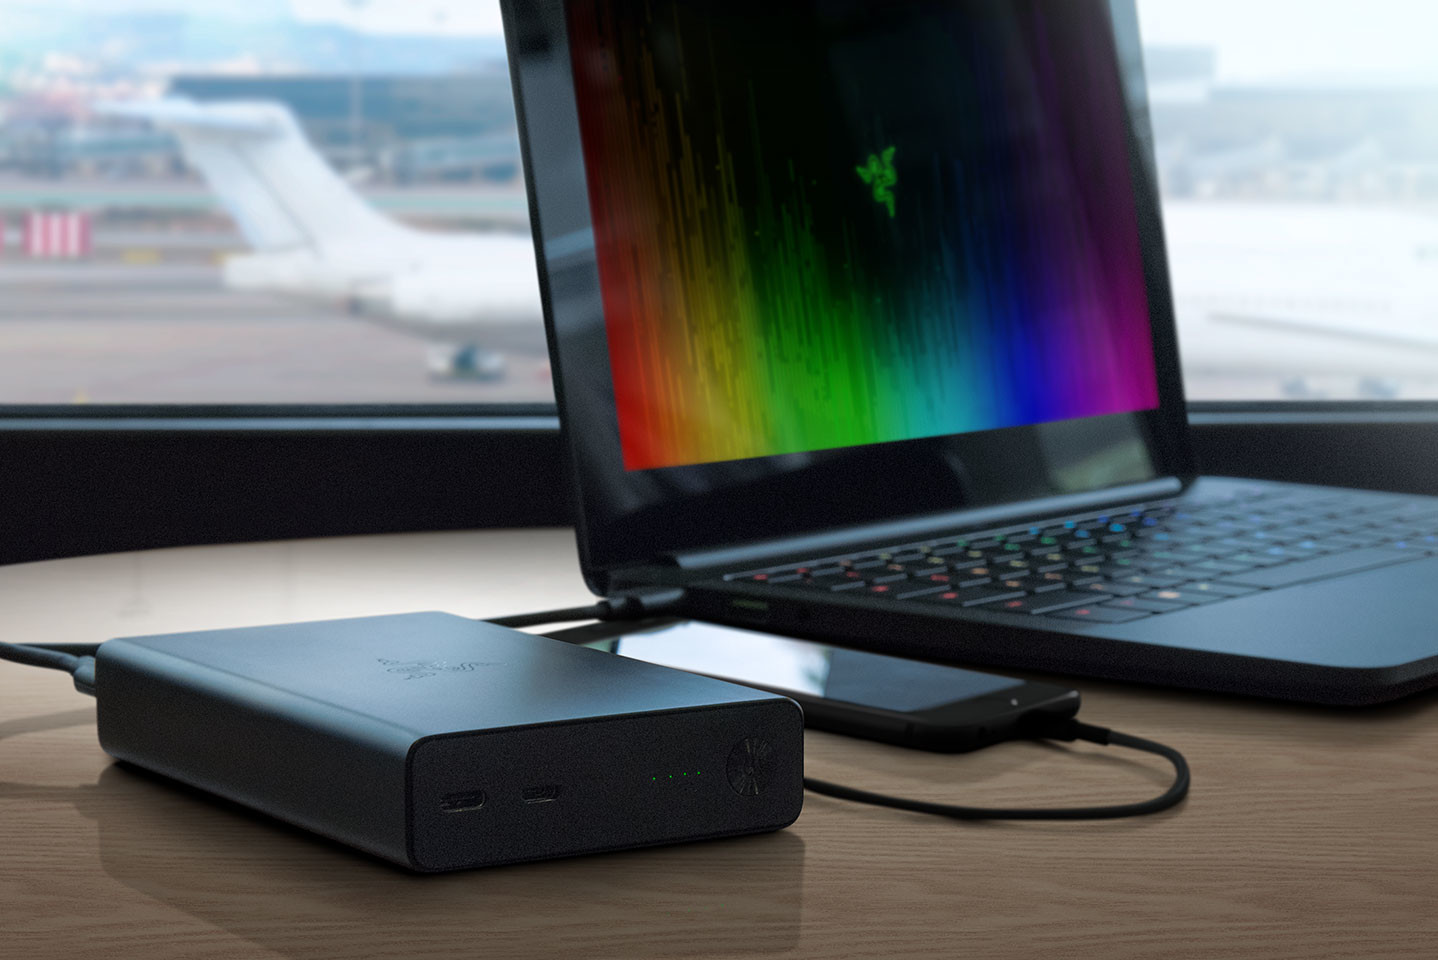 Razer releases their Power Bank Smart charging utility